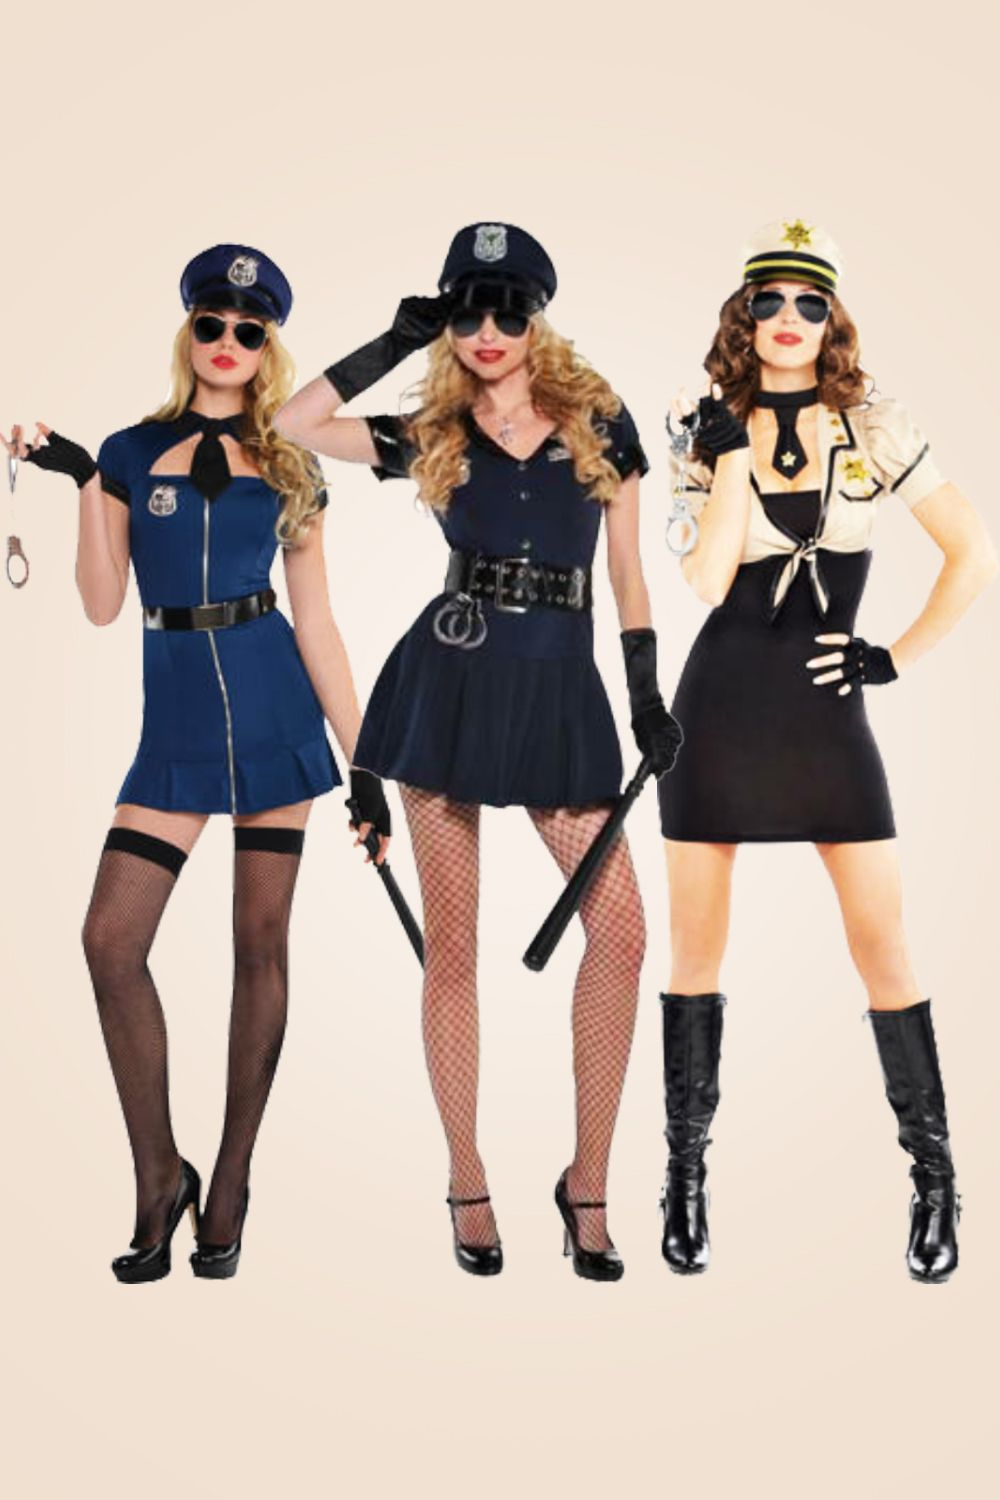 Halloween 2020 Cops Details about Police Womens Fancy Dress Officer Cop Constable